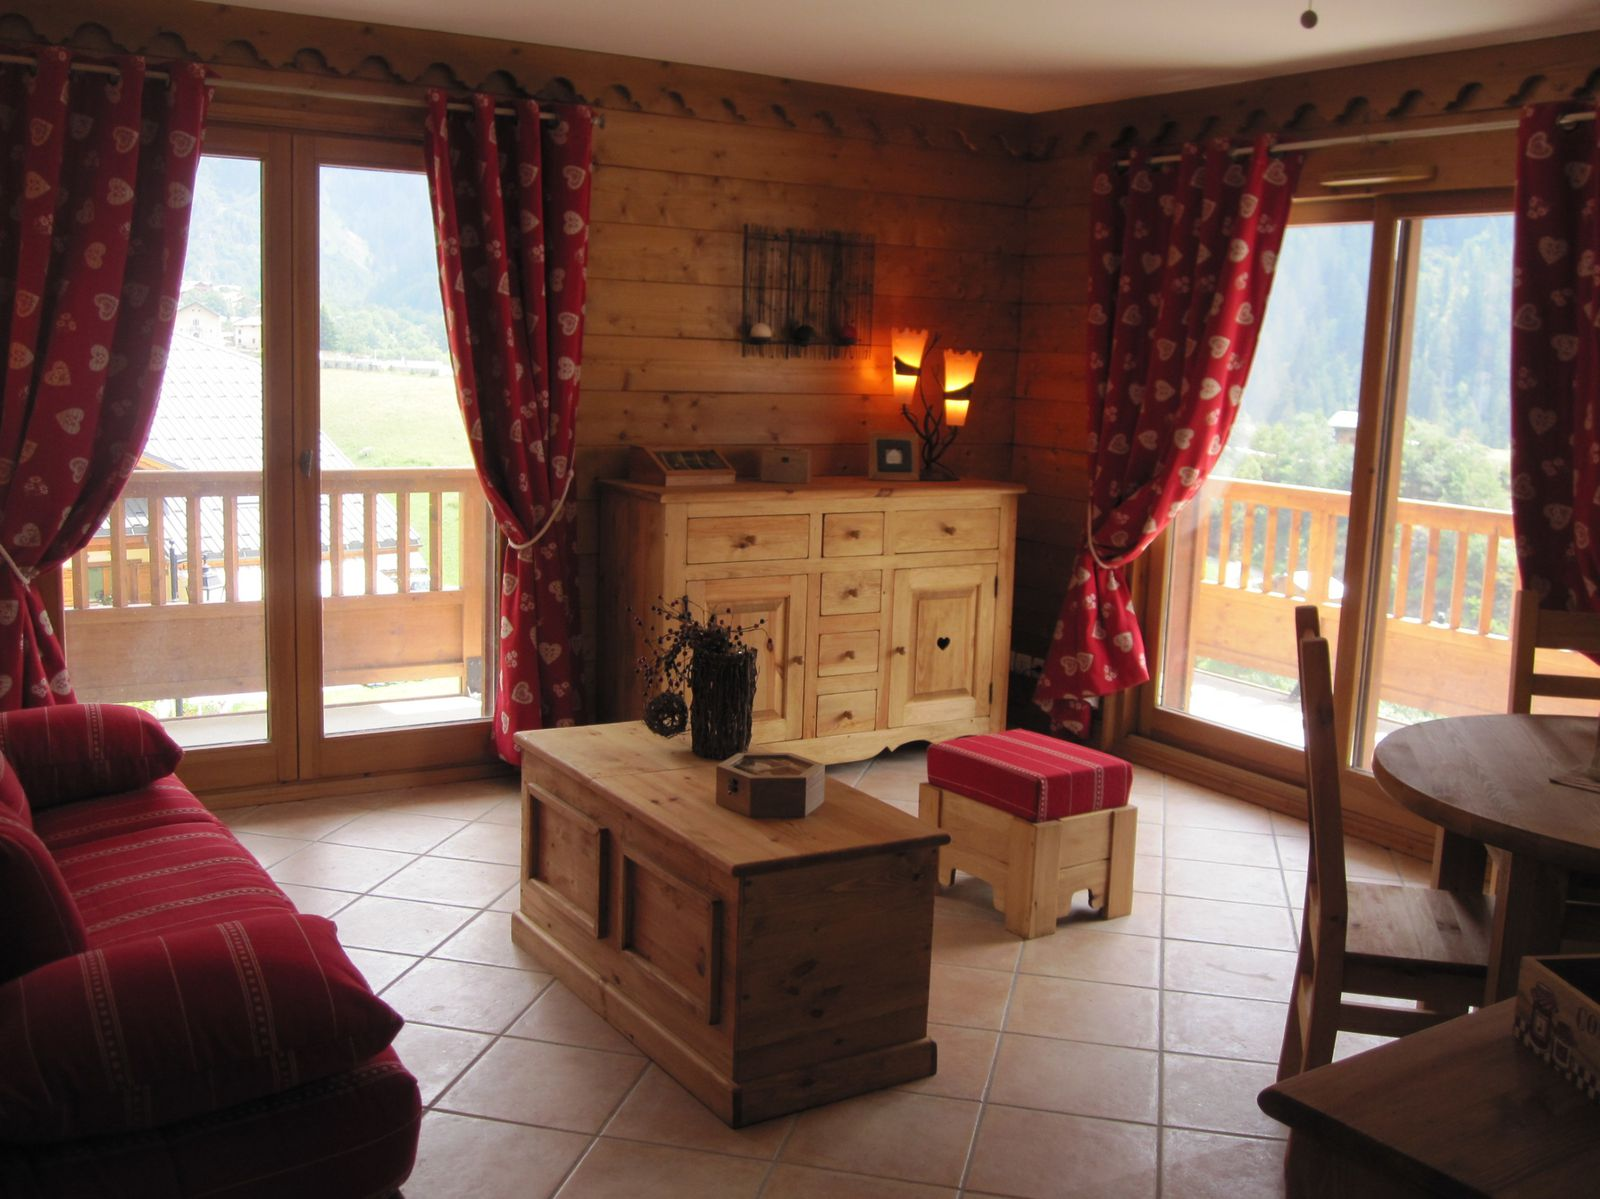 Our holiday accommodation is located in the typical resort of Champagny en Vanoise, in Savoie, not far from Courchevel, in the famous ski resort of La Plagne Paradiski. It is located at 1250 m of altitude, at 500 m far from the centre of the resort and the ski lifts (shuttle bus free). It is a small building divided into several accommodations. This one is located on the third floor. Interior It is very comfortably furnished in a contemporary style. You will have a living room with a double sofa bed, an open kitchen, a bedroom with a double bed, a bedroom with two single beds, a shower room, a bathroom and a WC. Exterior Outside, you will find a terrace with garden furniture and a parking space. An excellent choice to discover the park of the Vanoise The residence also includes a fitness centre, a Turkish bath, a sauna and a swimming pool. These facilities are available from mid-December to mid-April as well as in July and Augustus.